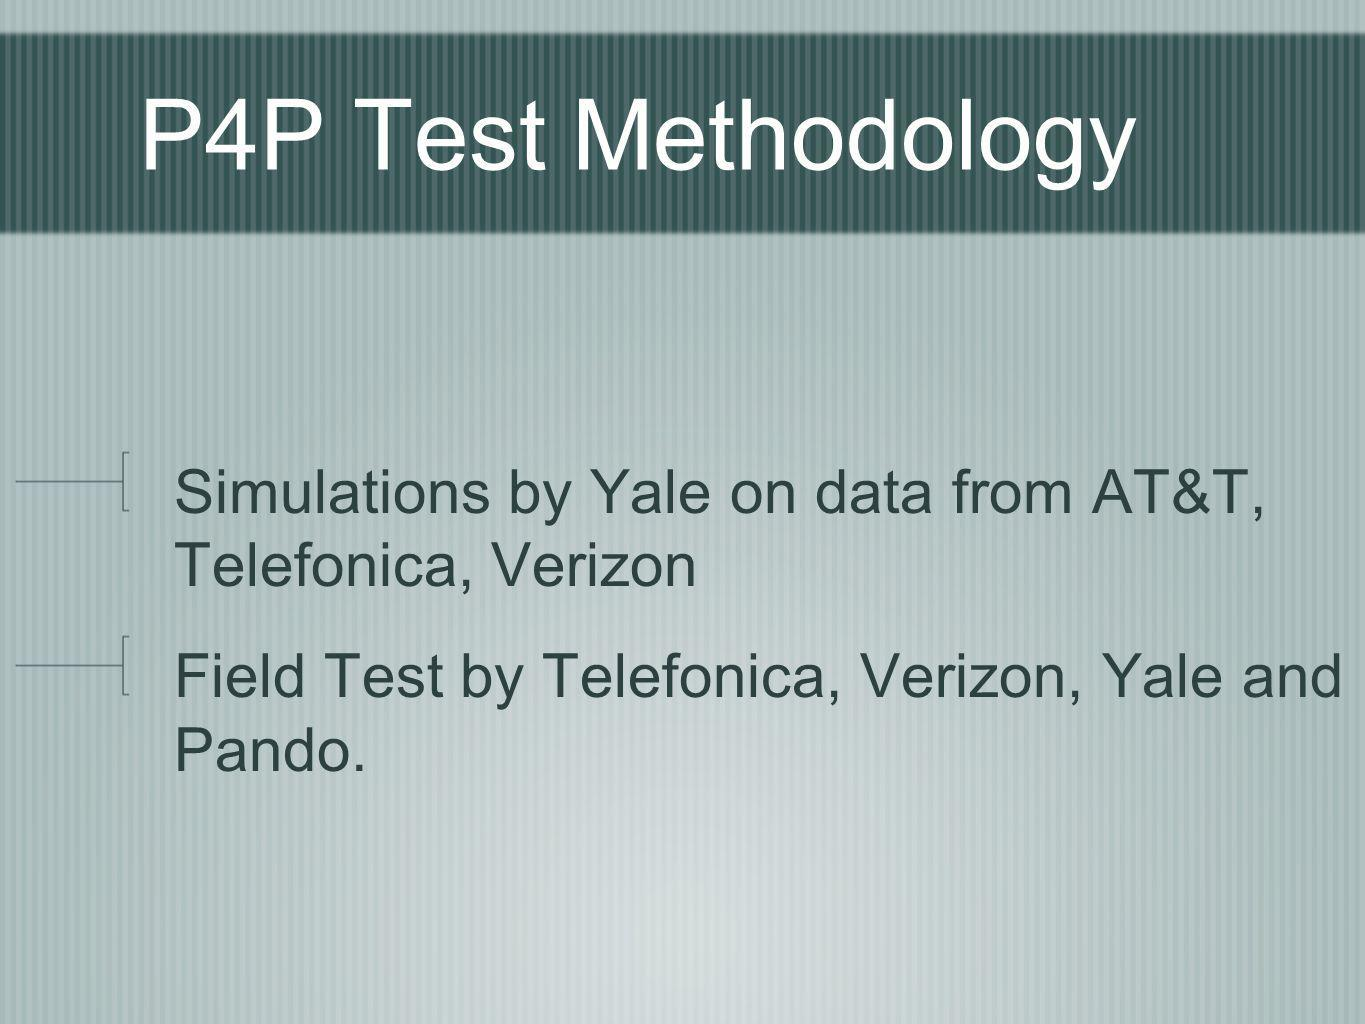 P4P Test Methodology Simulations by Yale on data from AT&T, Telefonica, Verizon.